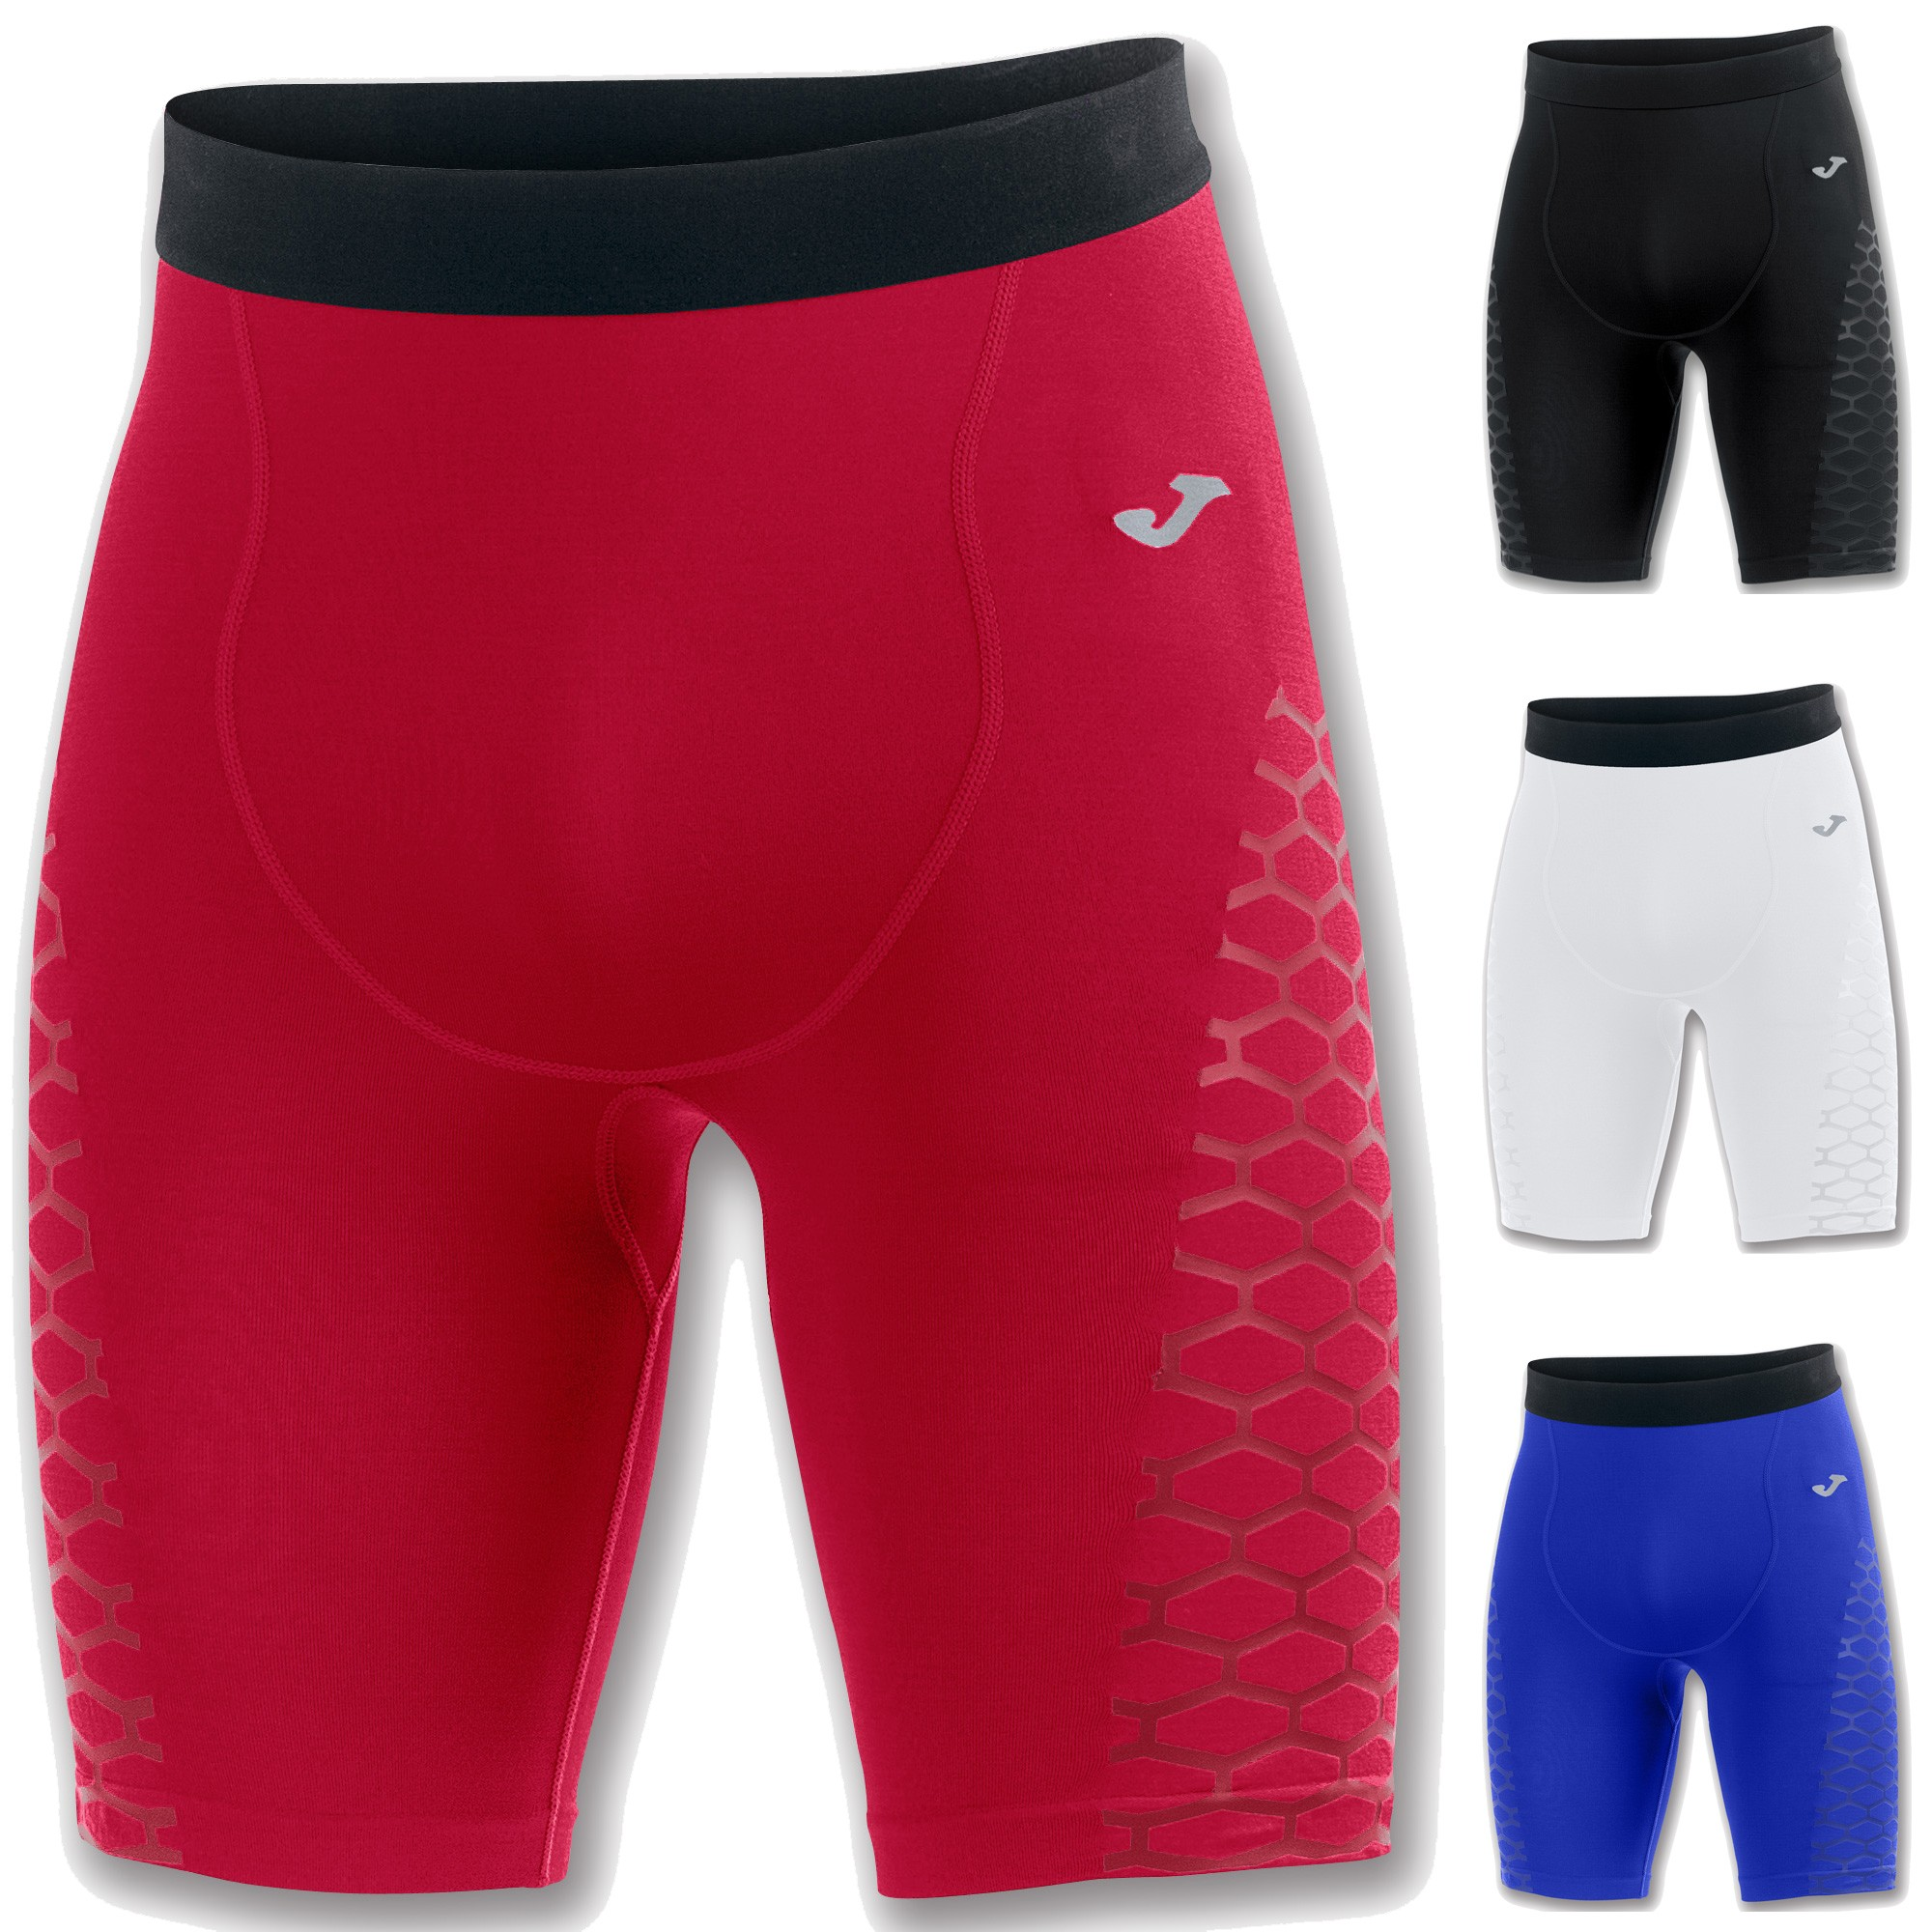 Short de compression Brama Emotion II